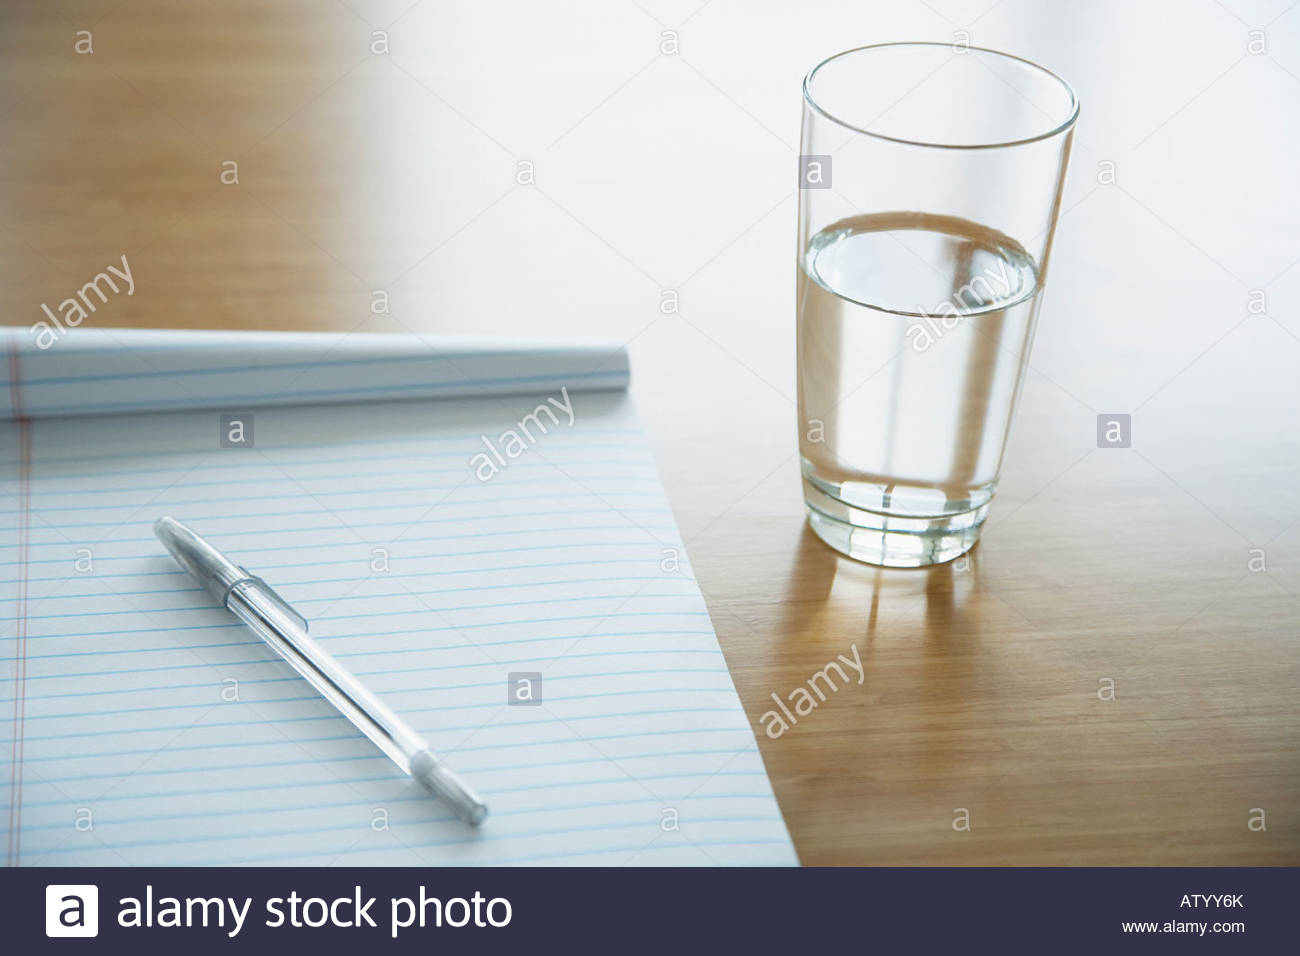 Notepad with a pen lying on it and glass of water on a table - Stock Image